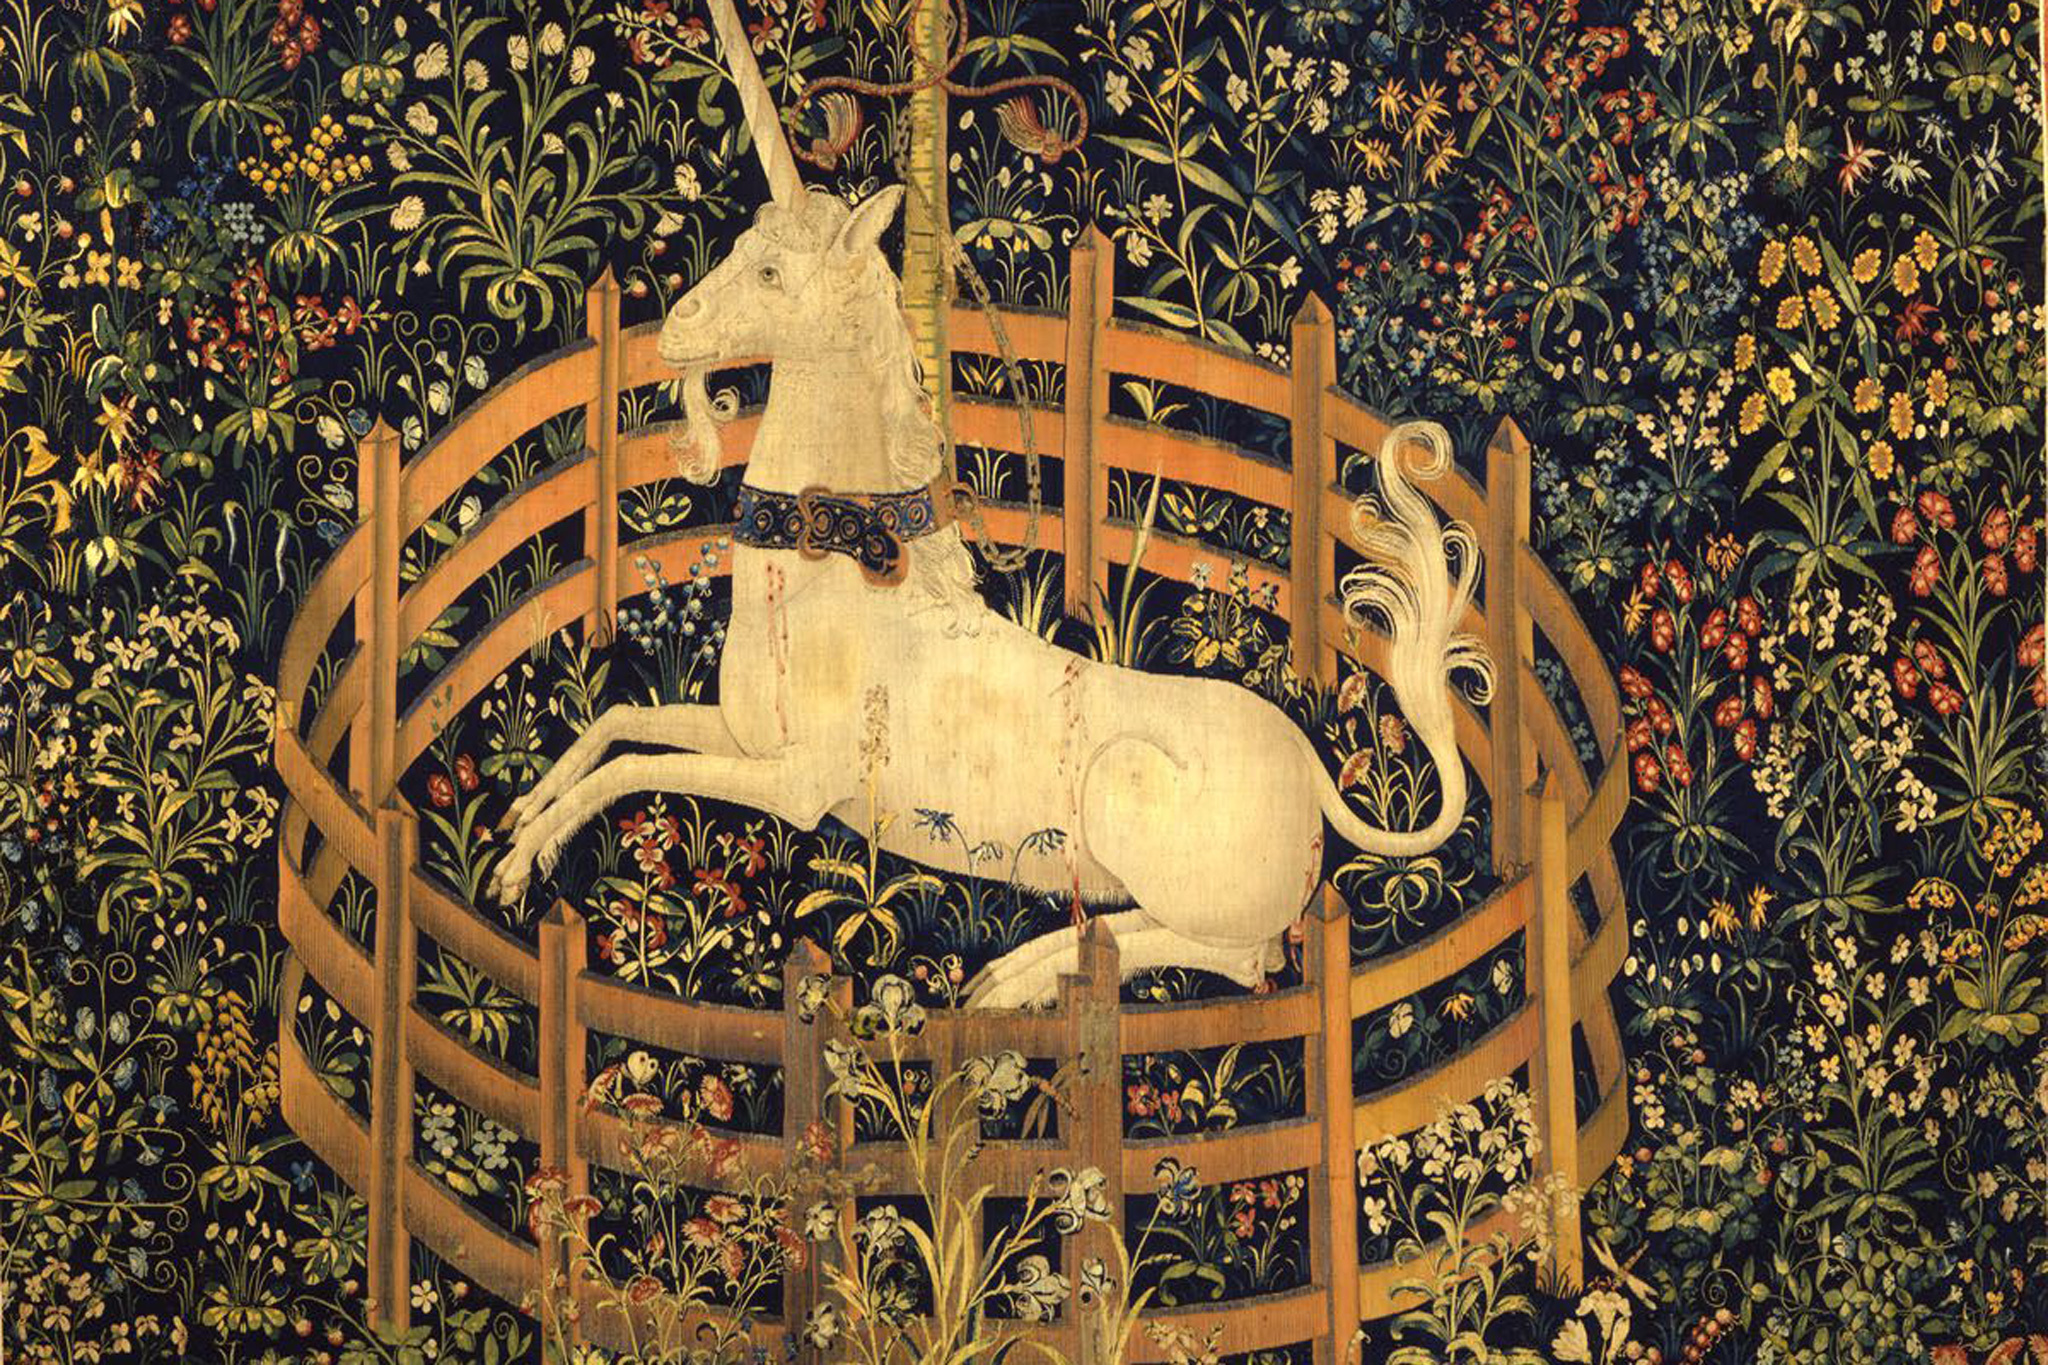 Family Festival at the Cloisters: In Search of the Unicorn